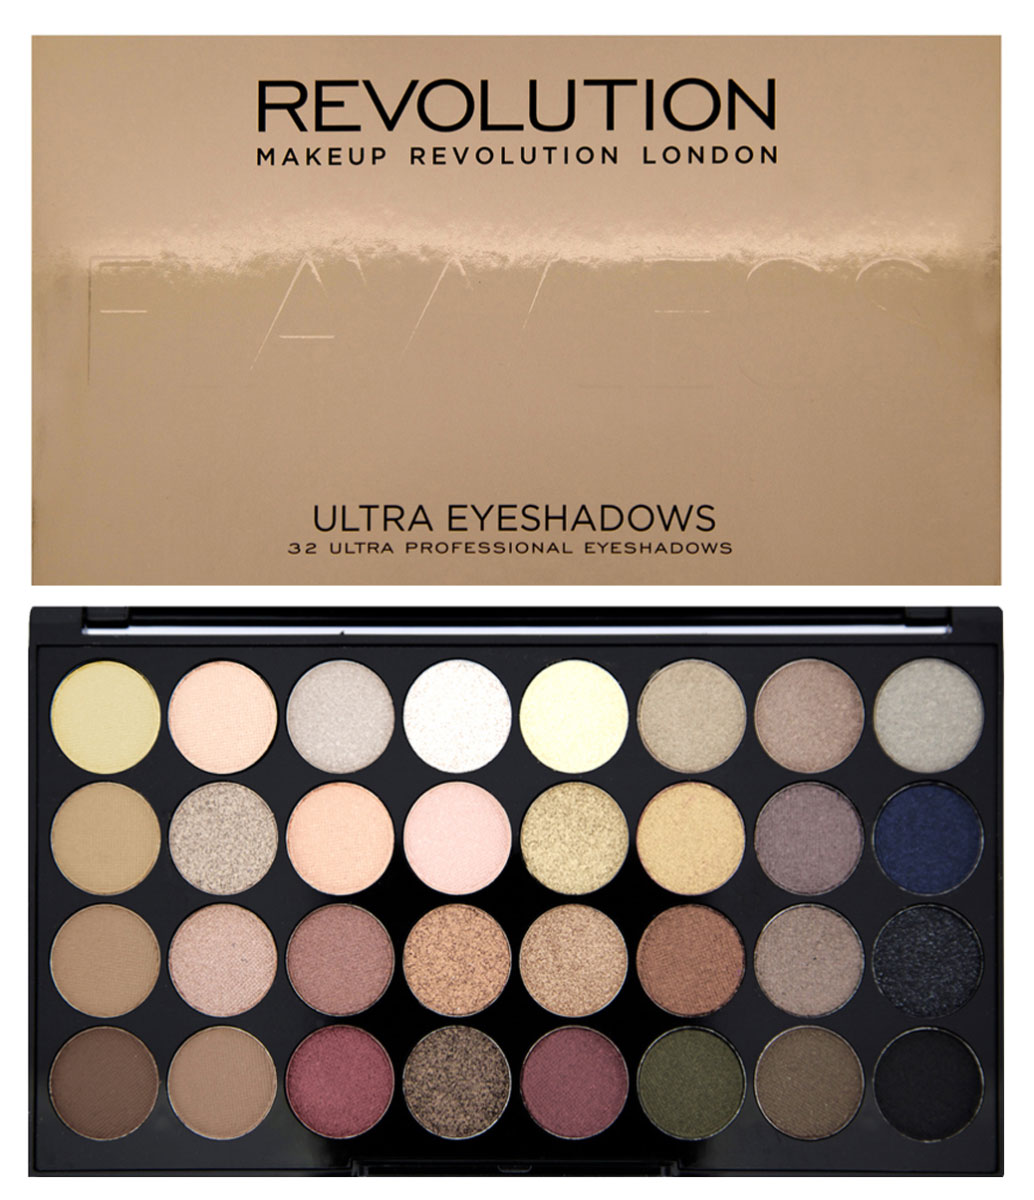 Makeup Revolution Набор из 32 теней 32 Eyeshadow Palette, Flawless, 16 гр makeup revolution набор из 30 теней 30 eyeshadow palette fortune favours the brave